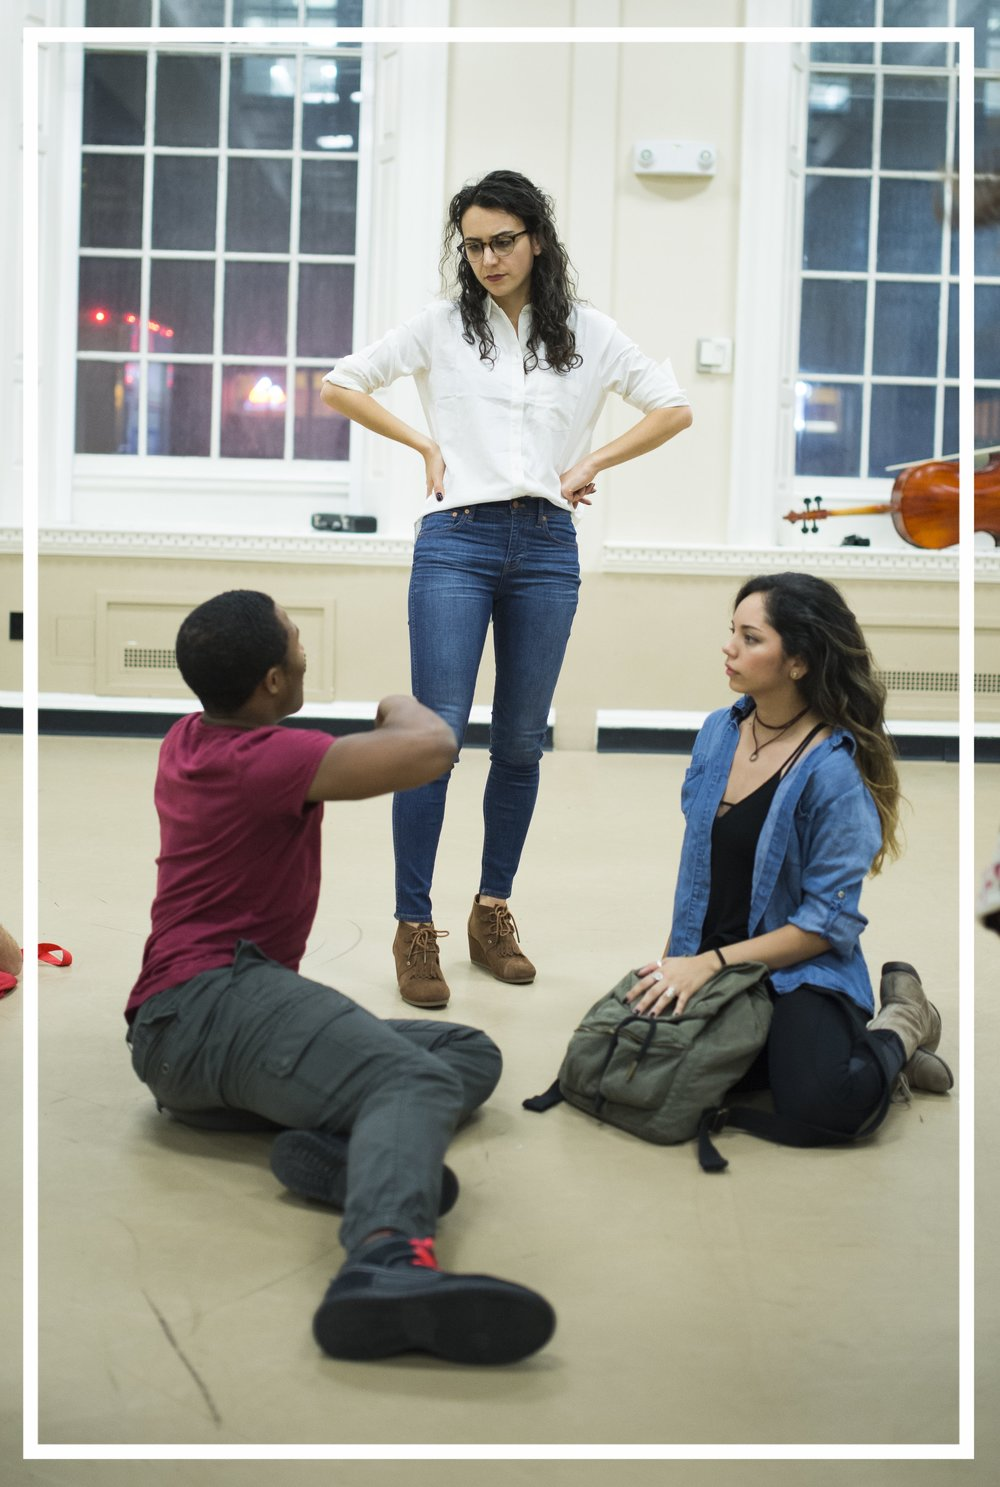 In rehearsal with Jesus (Daniel Yearwood) and Mary (Mili Diaz) .